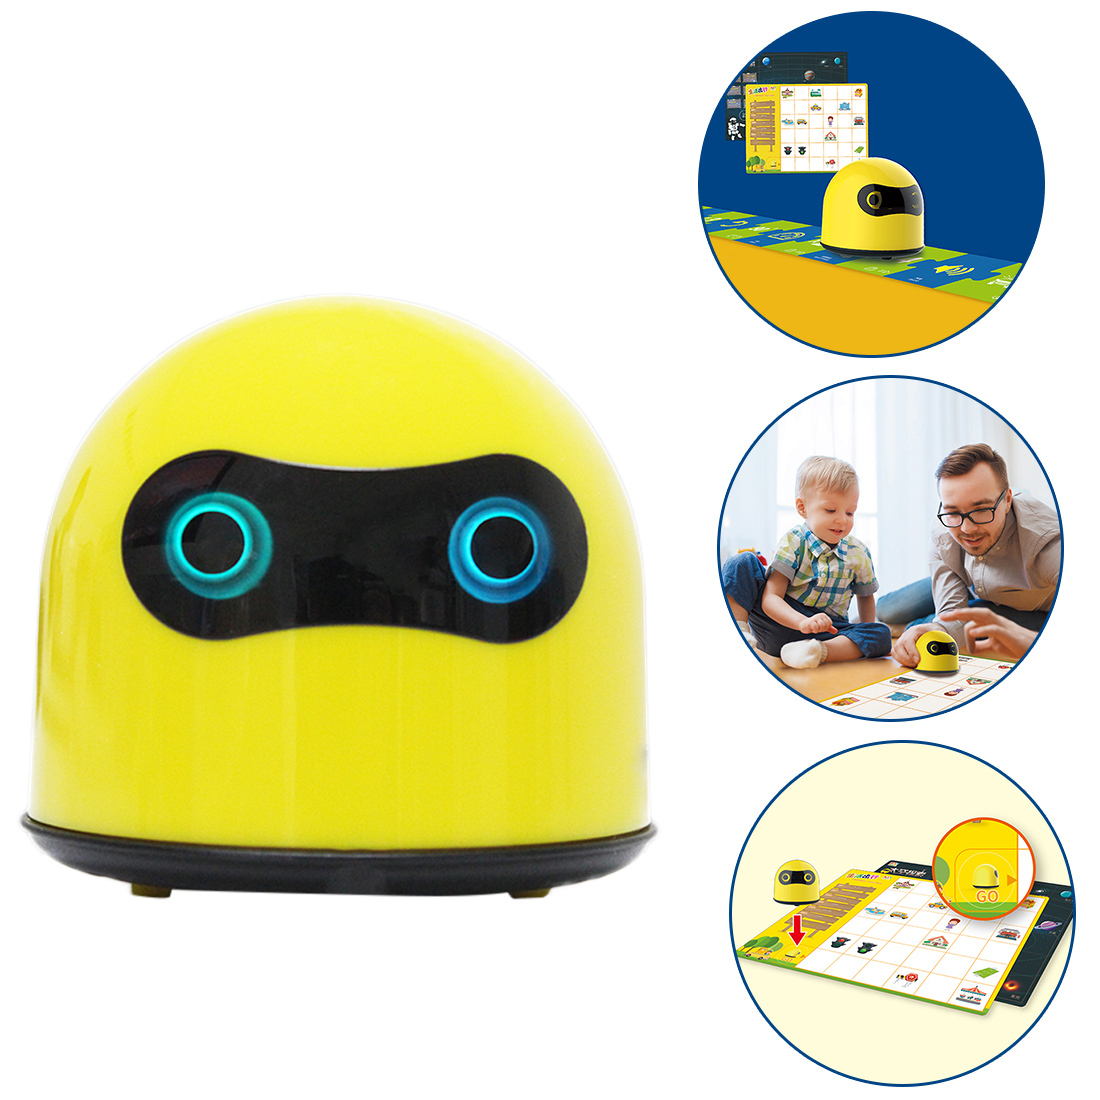 Programmed Robot Car Kit Steam Early Education Learning Ai Programming Toy Kids Birthdaty Gifts 2020 New Arrival